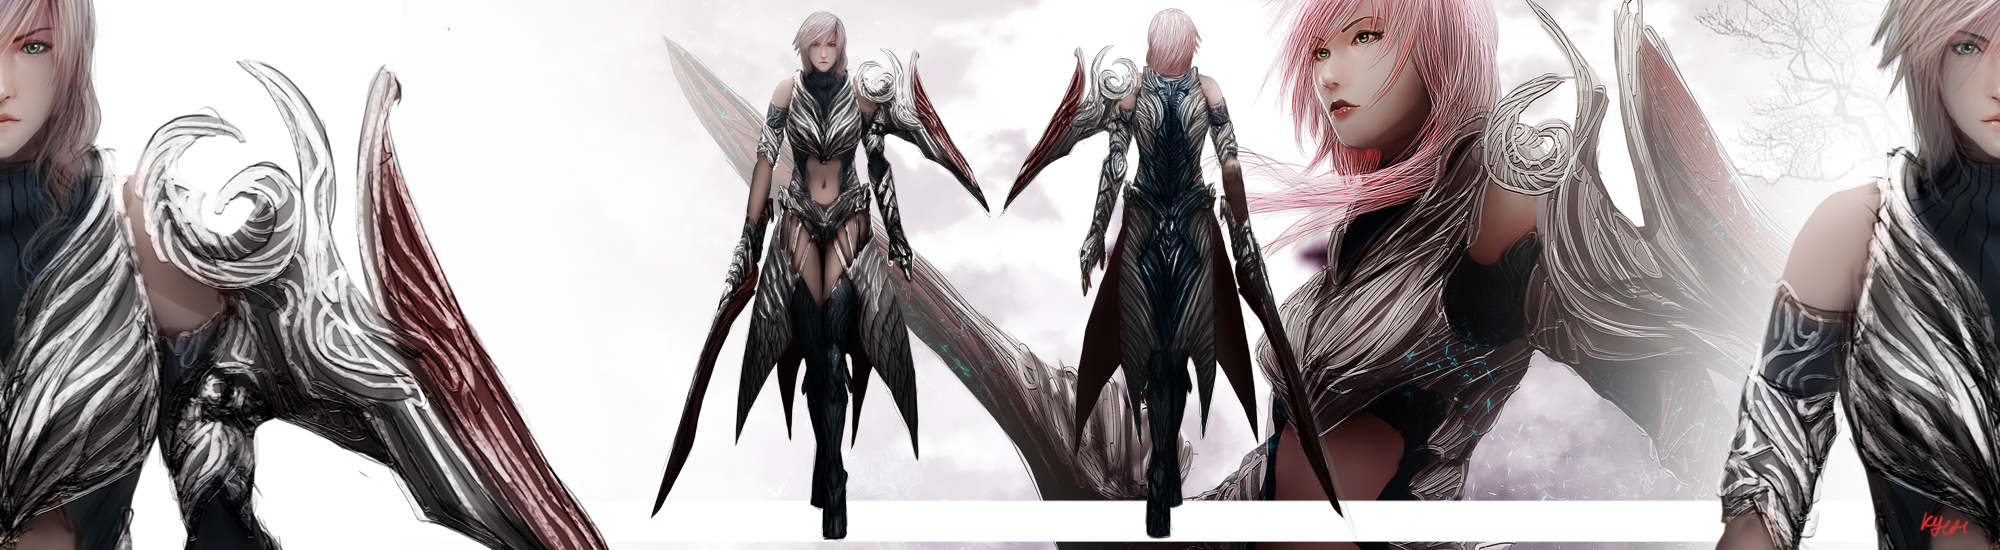 Lightning Returns - FFXIII Swift Wind Design by nahnahnivek